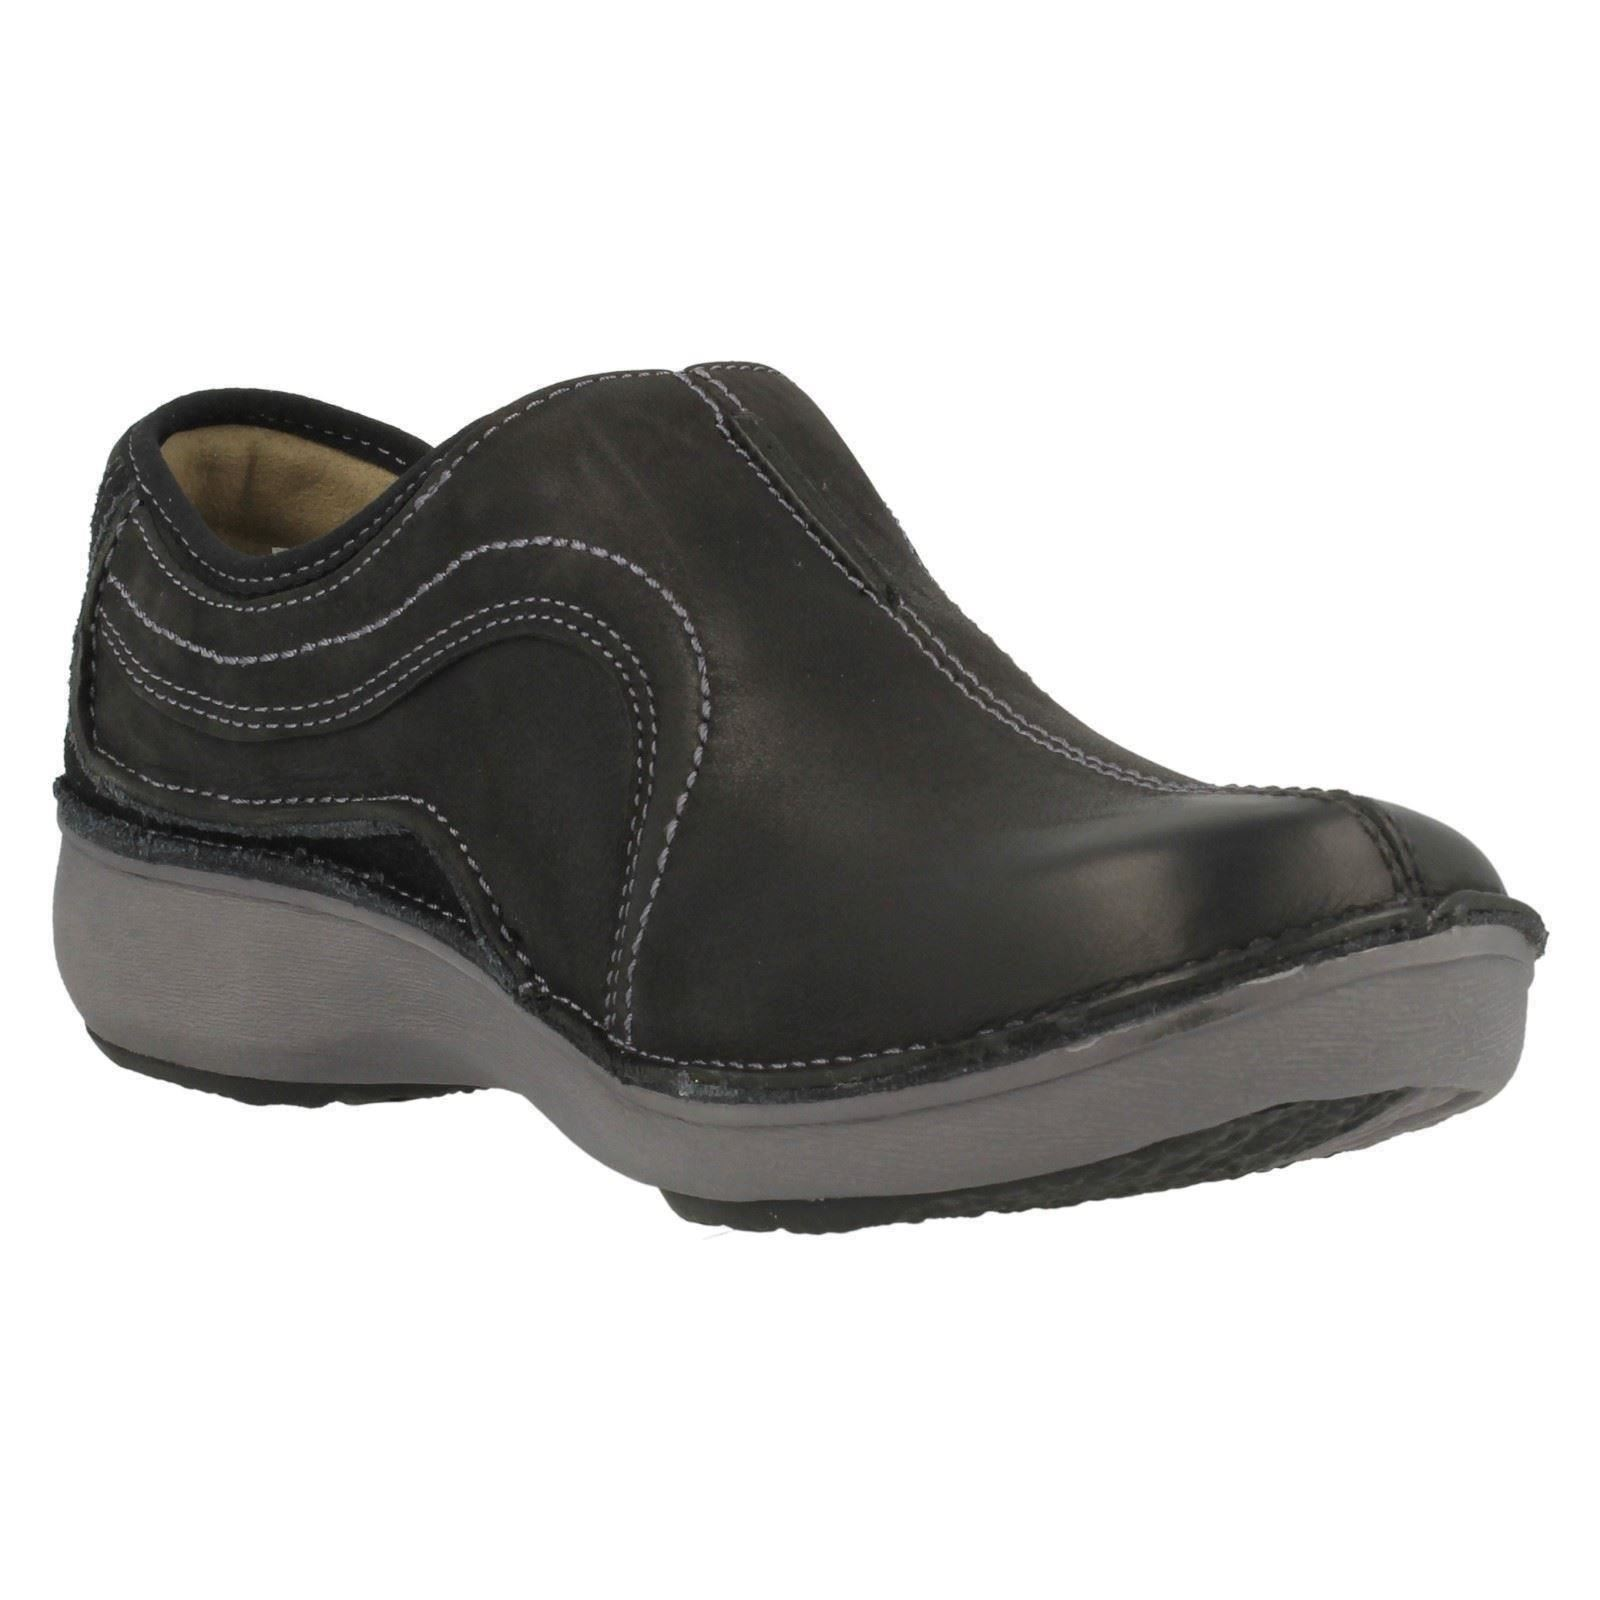 Black Wave Walk Shoes Ladies Uk